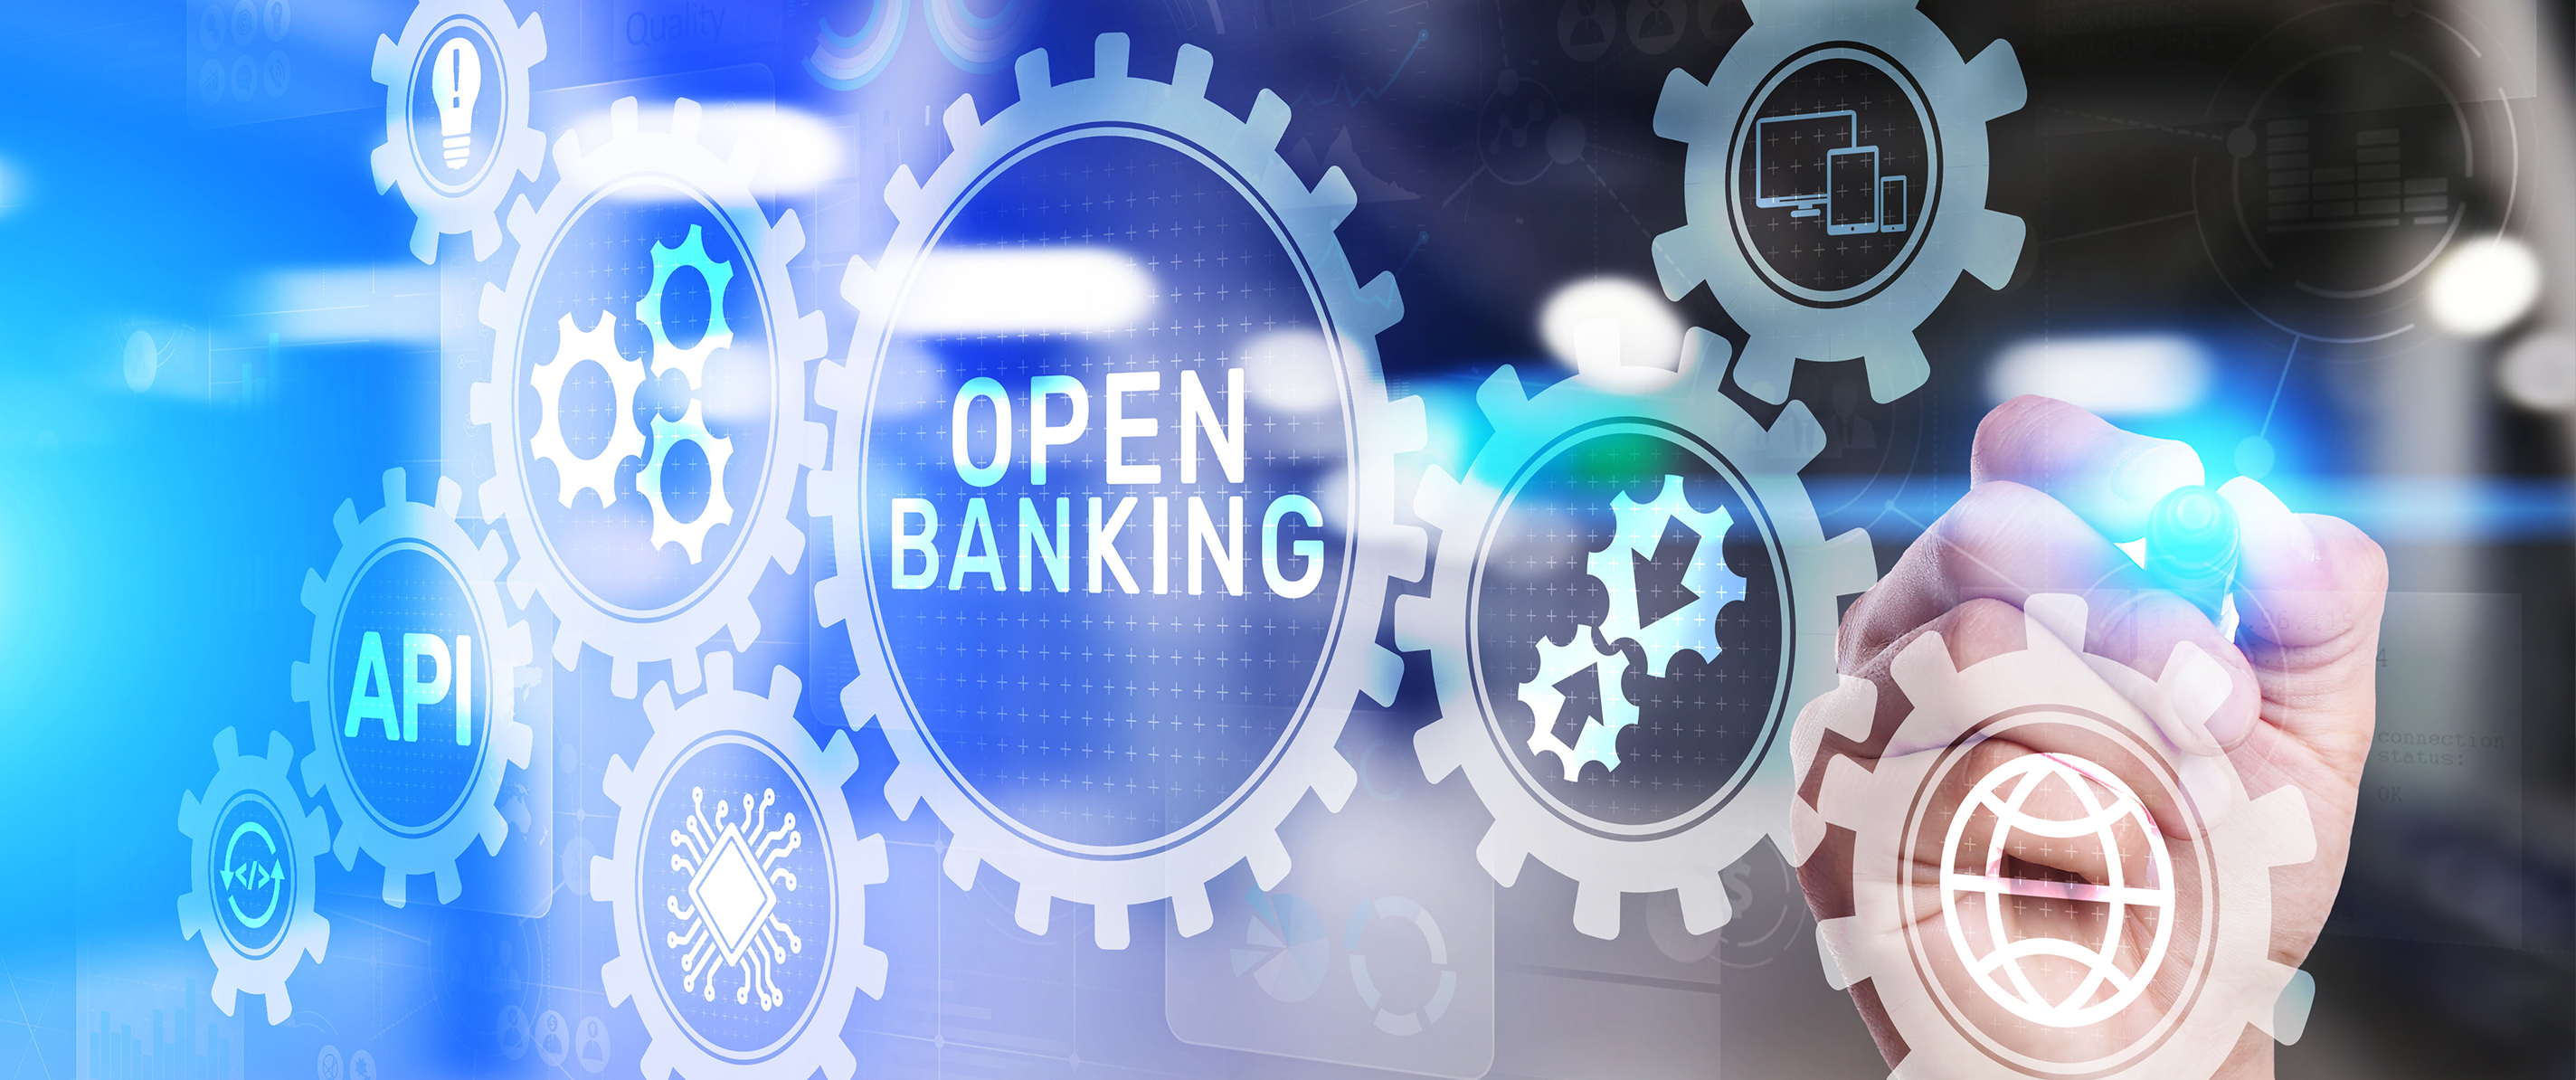 Open Banking – Unboxing a Ubiquitous Trend That Is Here to Stay